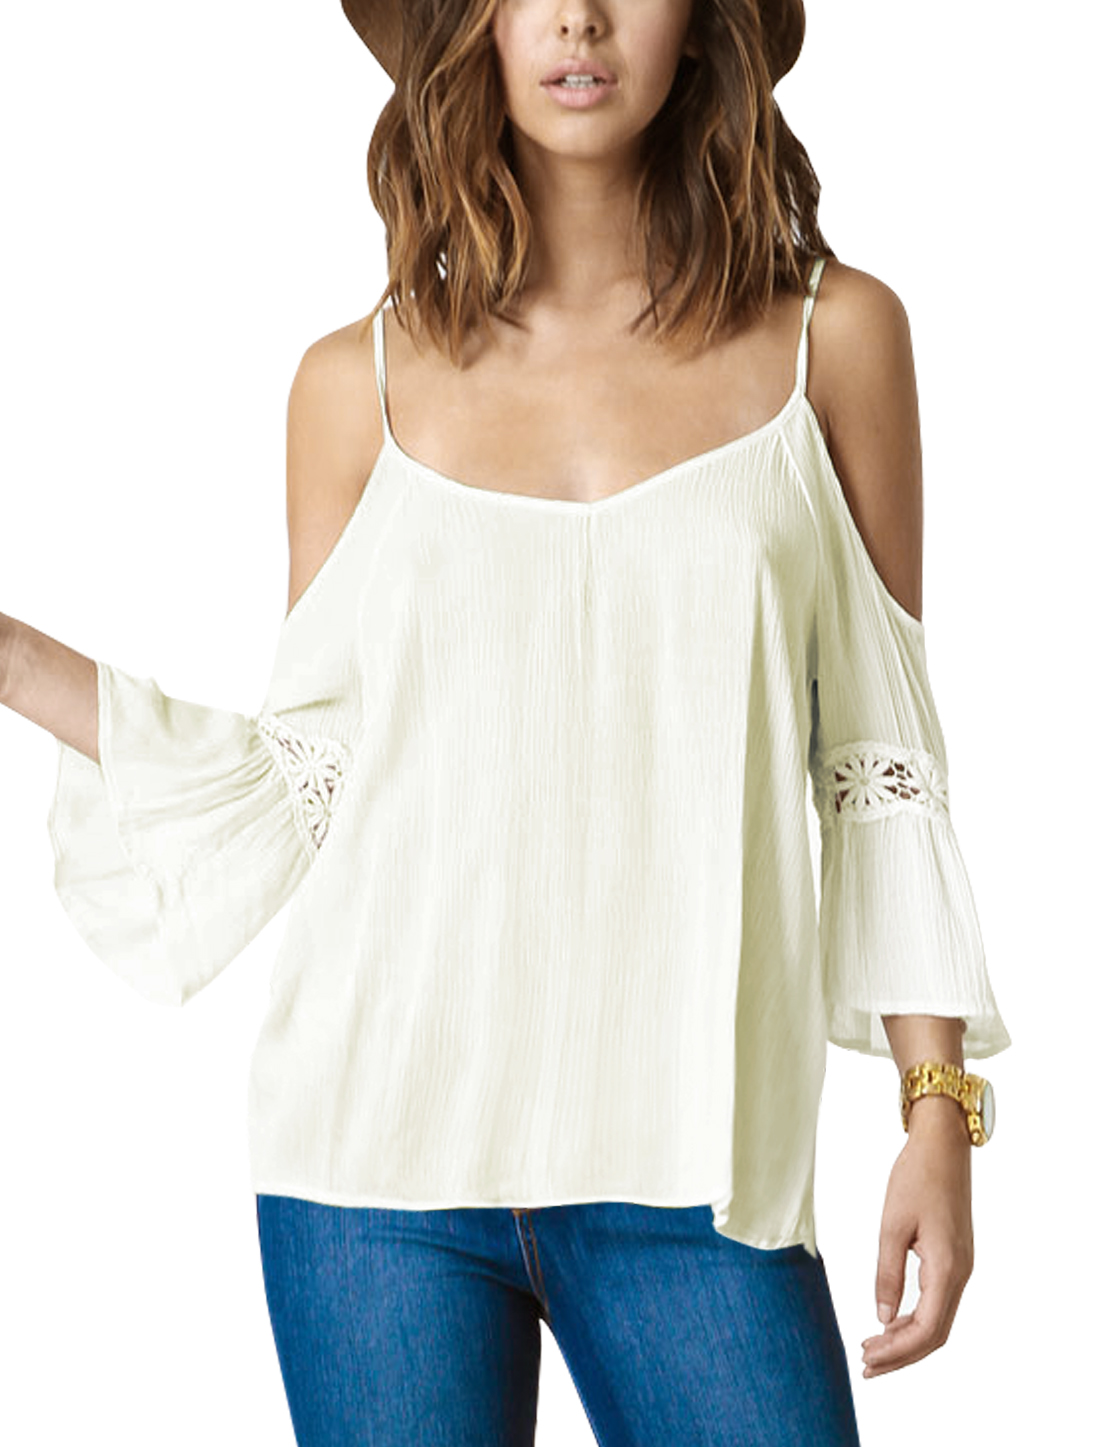 Women Scoop Neck Cut Out Bell Sleeves Open Back Blouse White XS